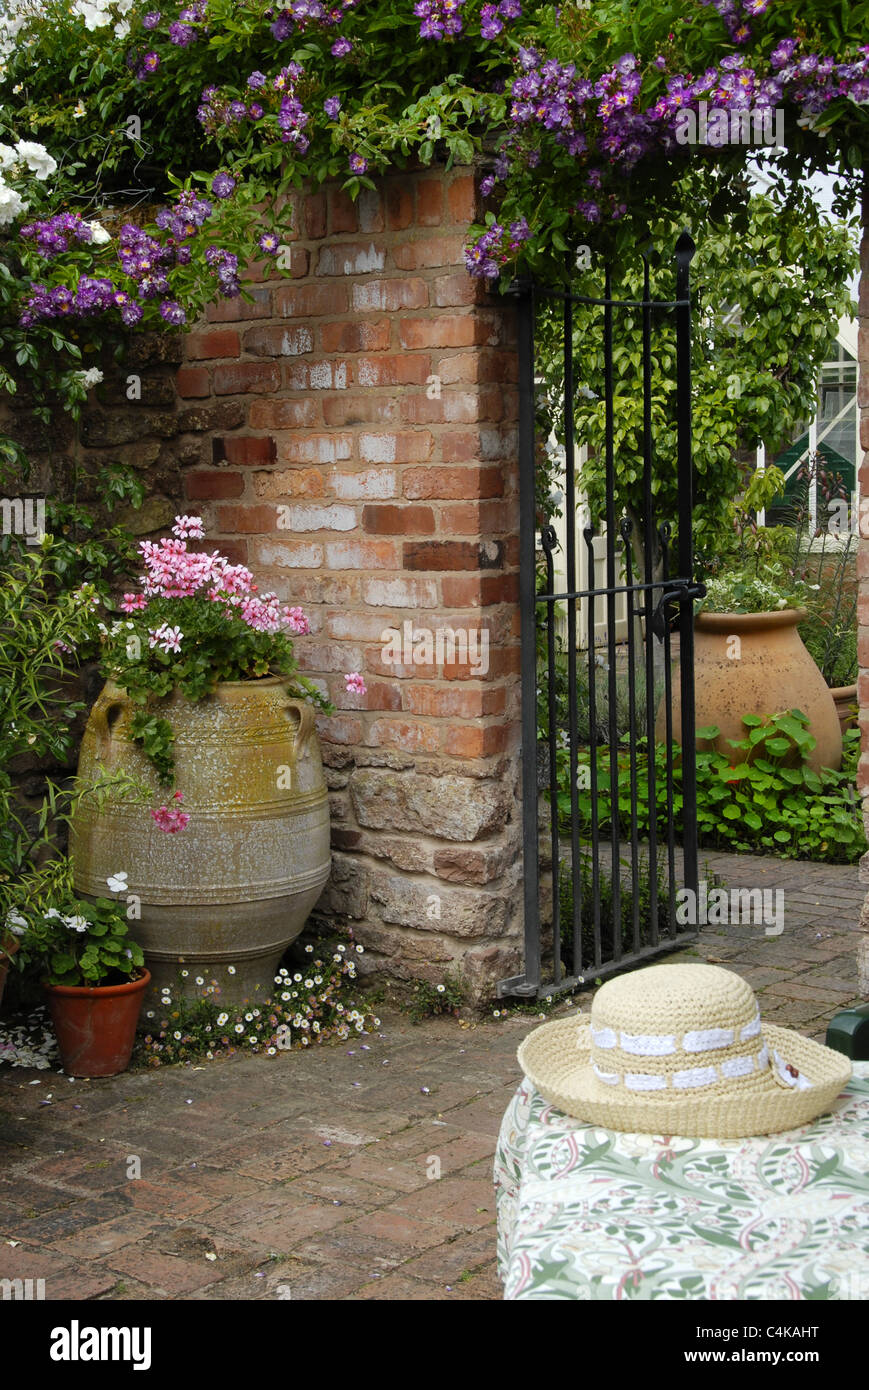 Portrait image of a typical English country garden with wall,garden ...